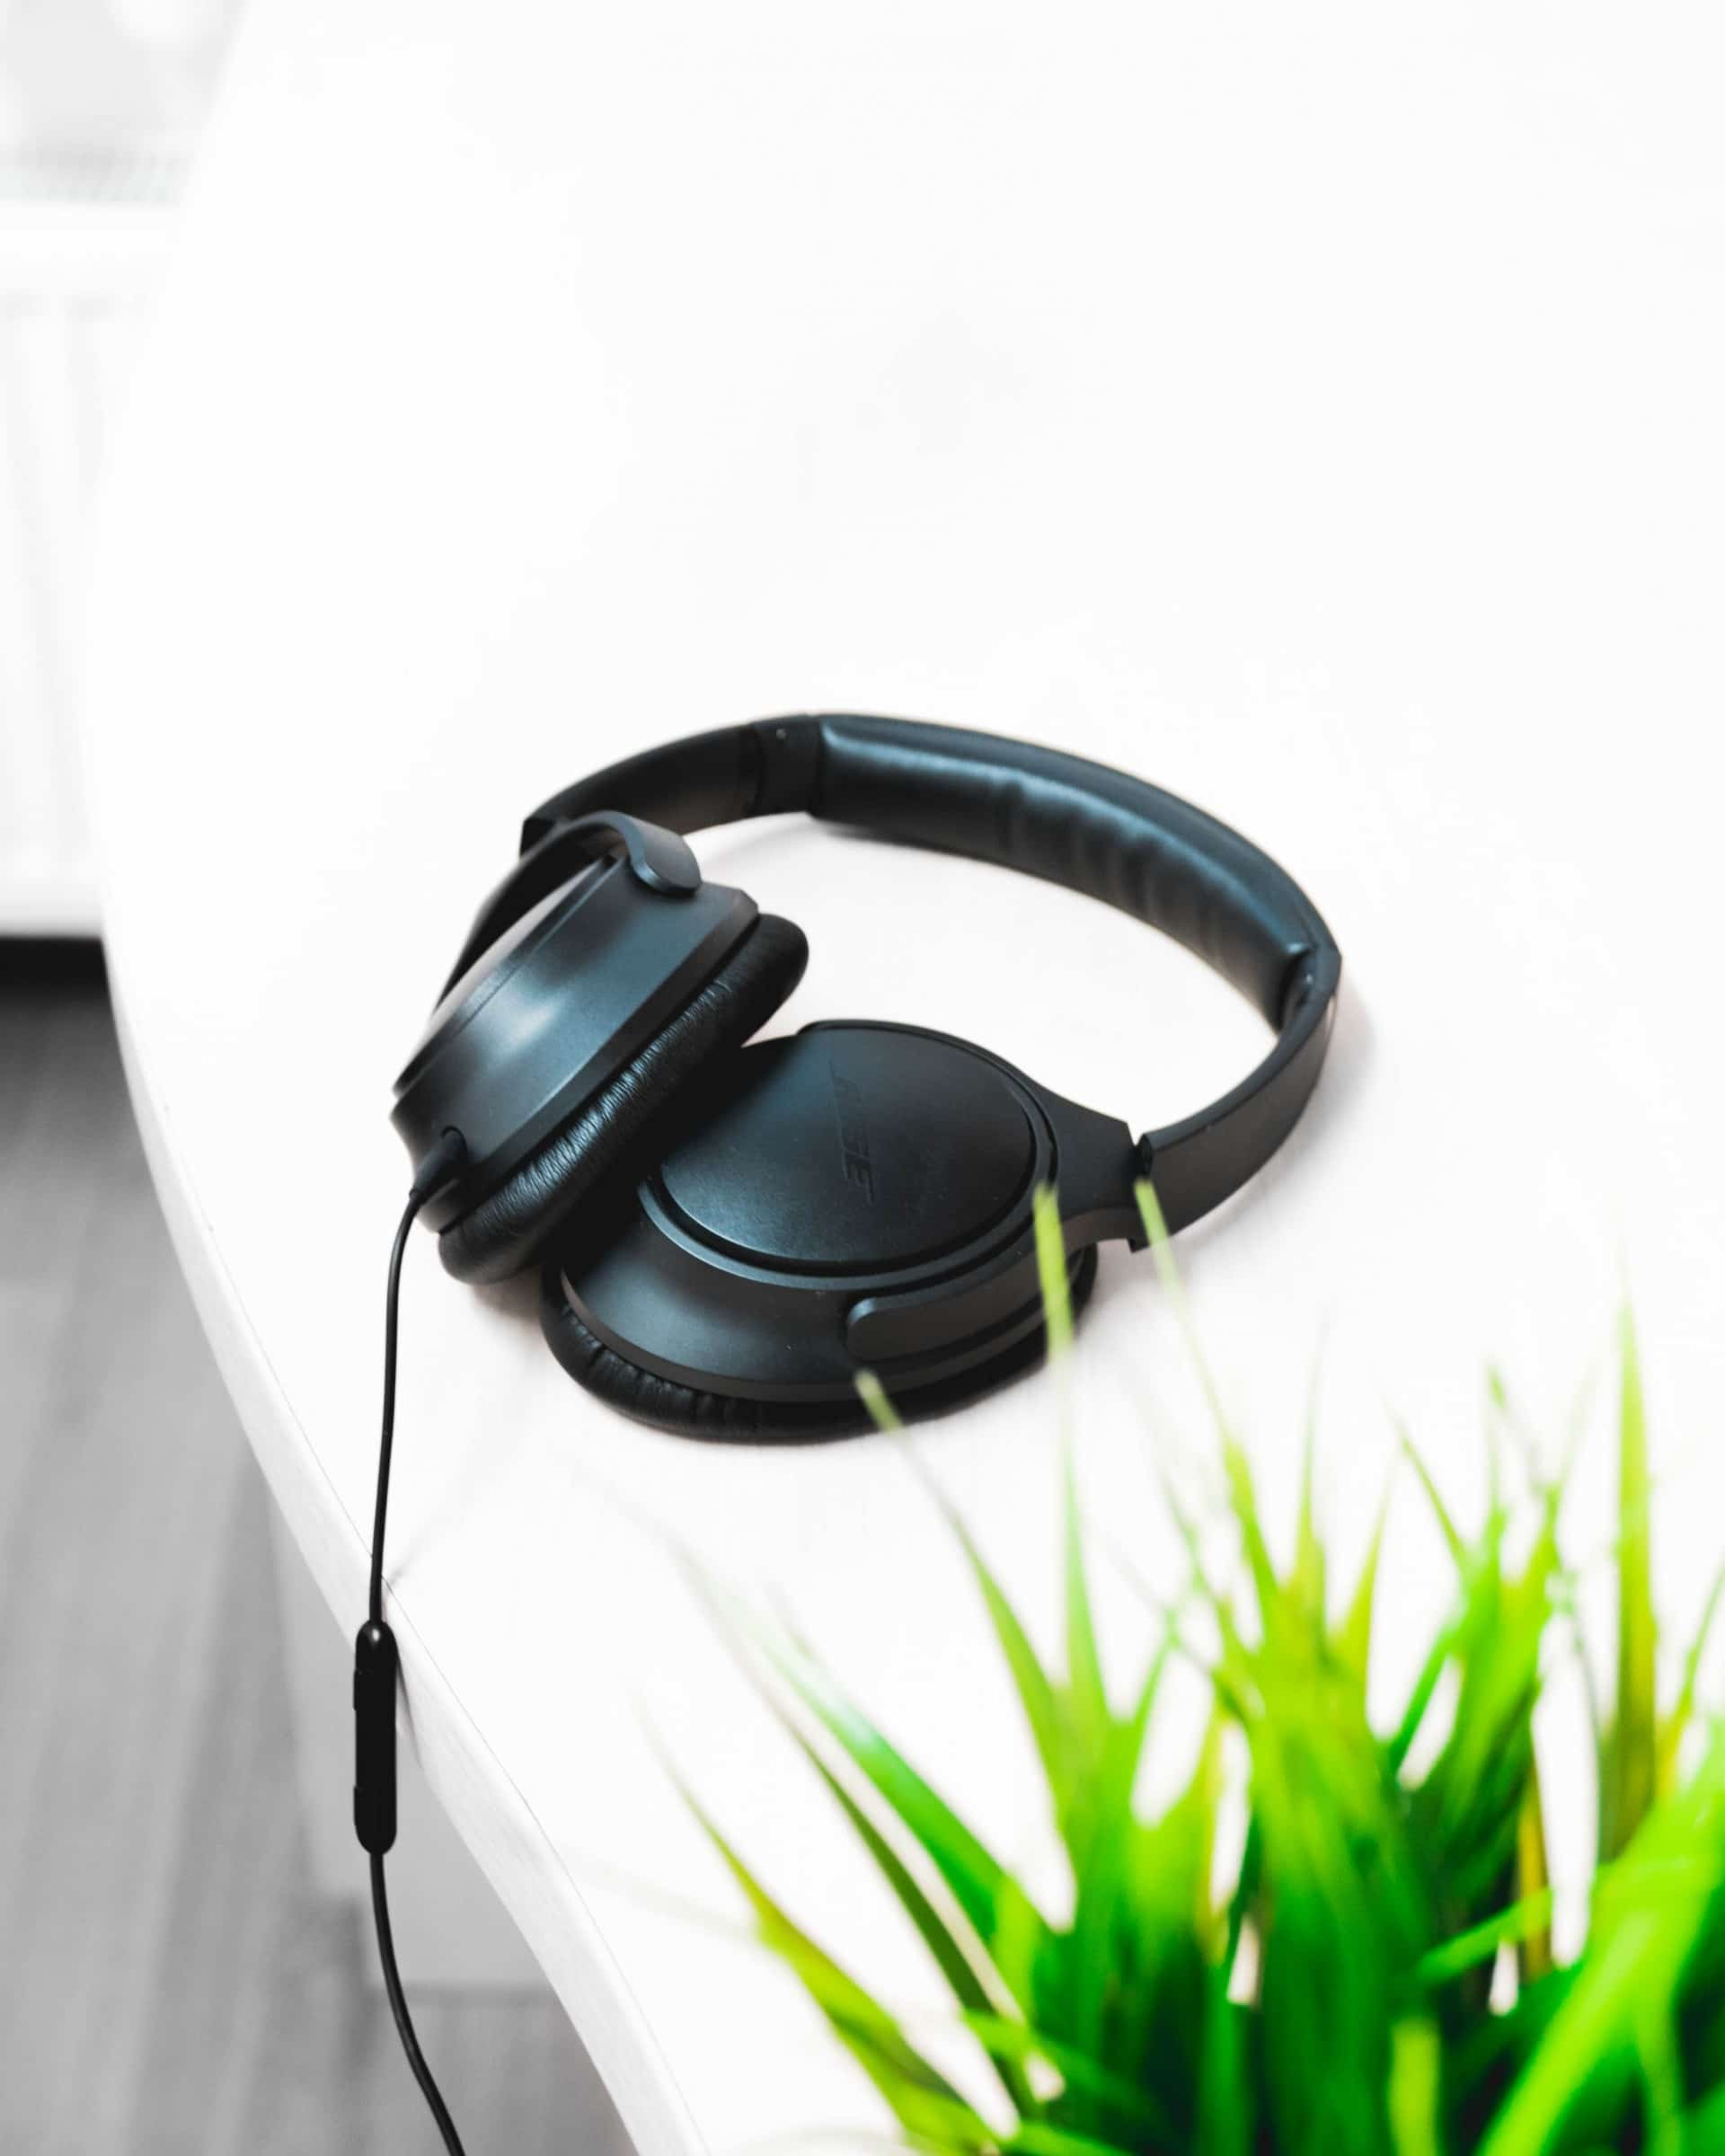 Hearing Protection Loss Lawn Mowing Ear Ears